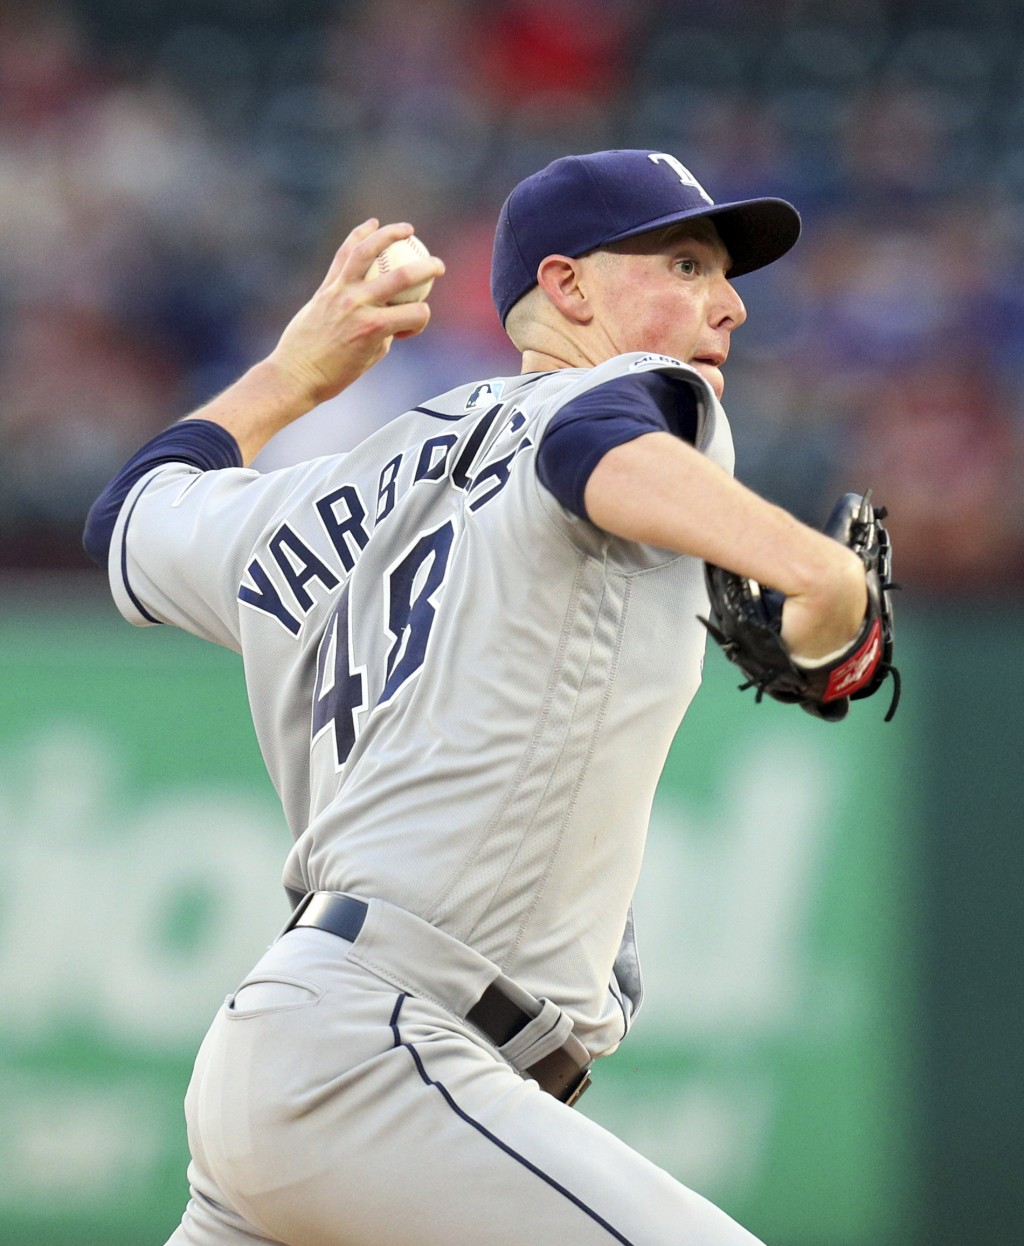 Tampa Bay Rays starter Ryan Yarbrough delivers a pitch during the first inning against the Texas Rangers in a baseball game Tuesday, Sept. 10, 2019, i...